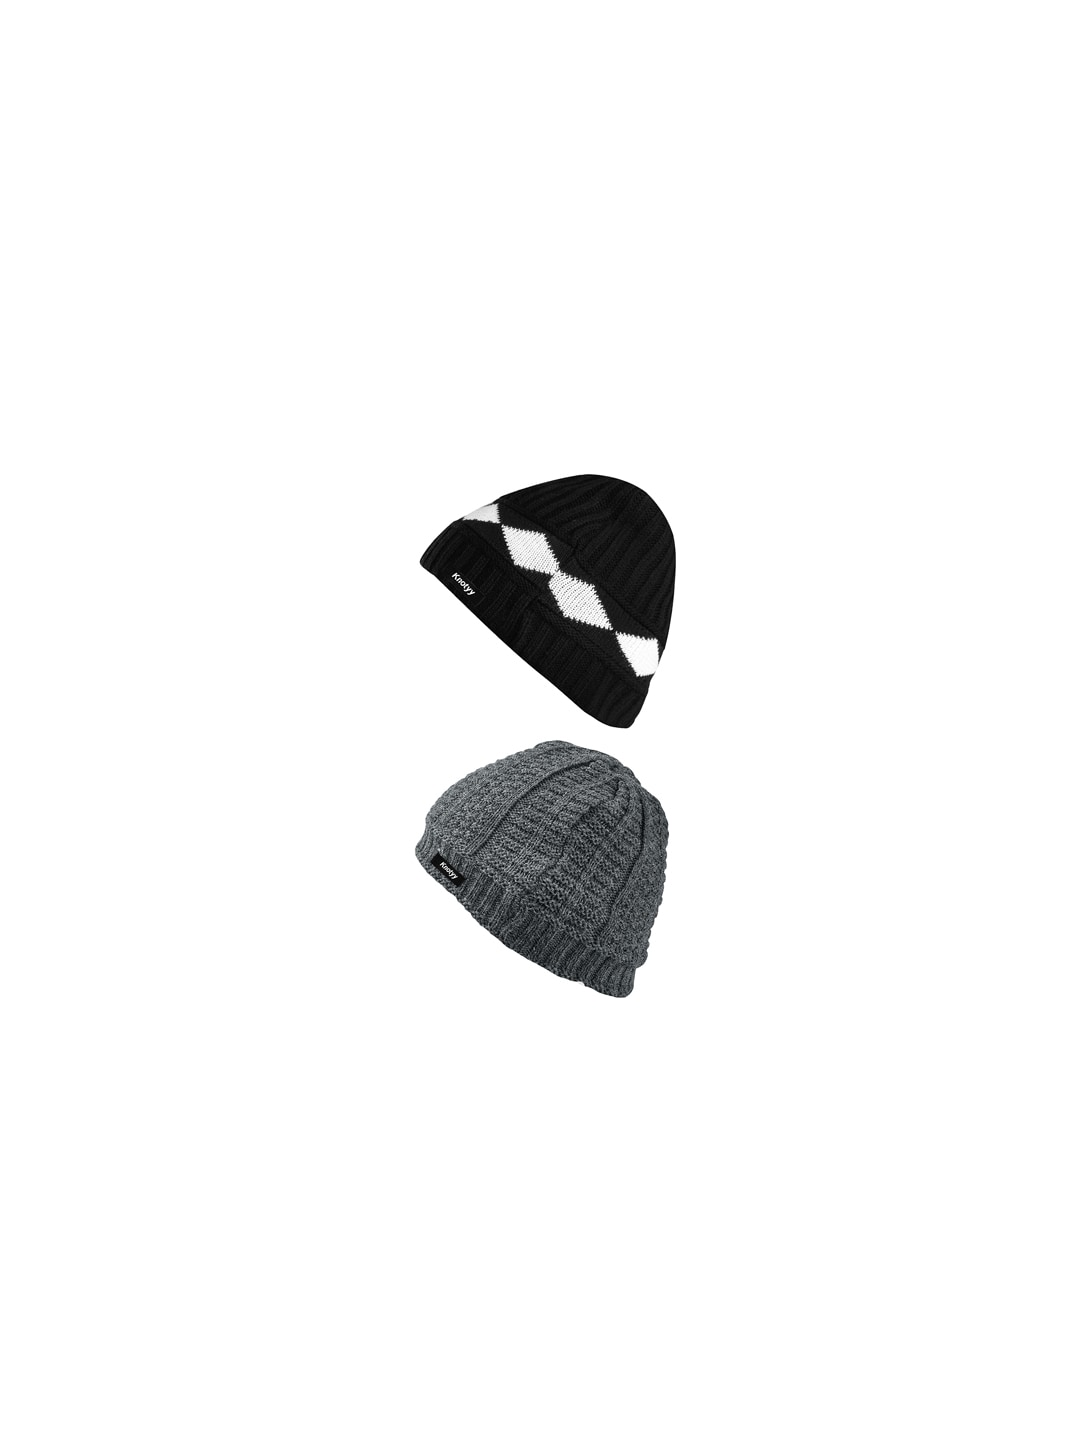 3bb5a813c9b Beanies Cap - Buy Beanies Cap online in India